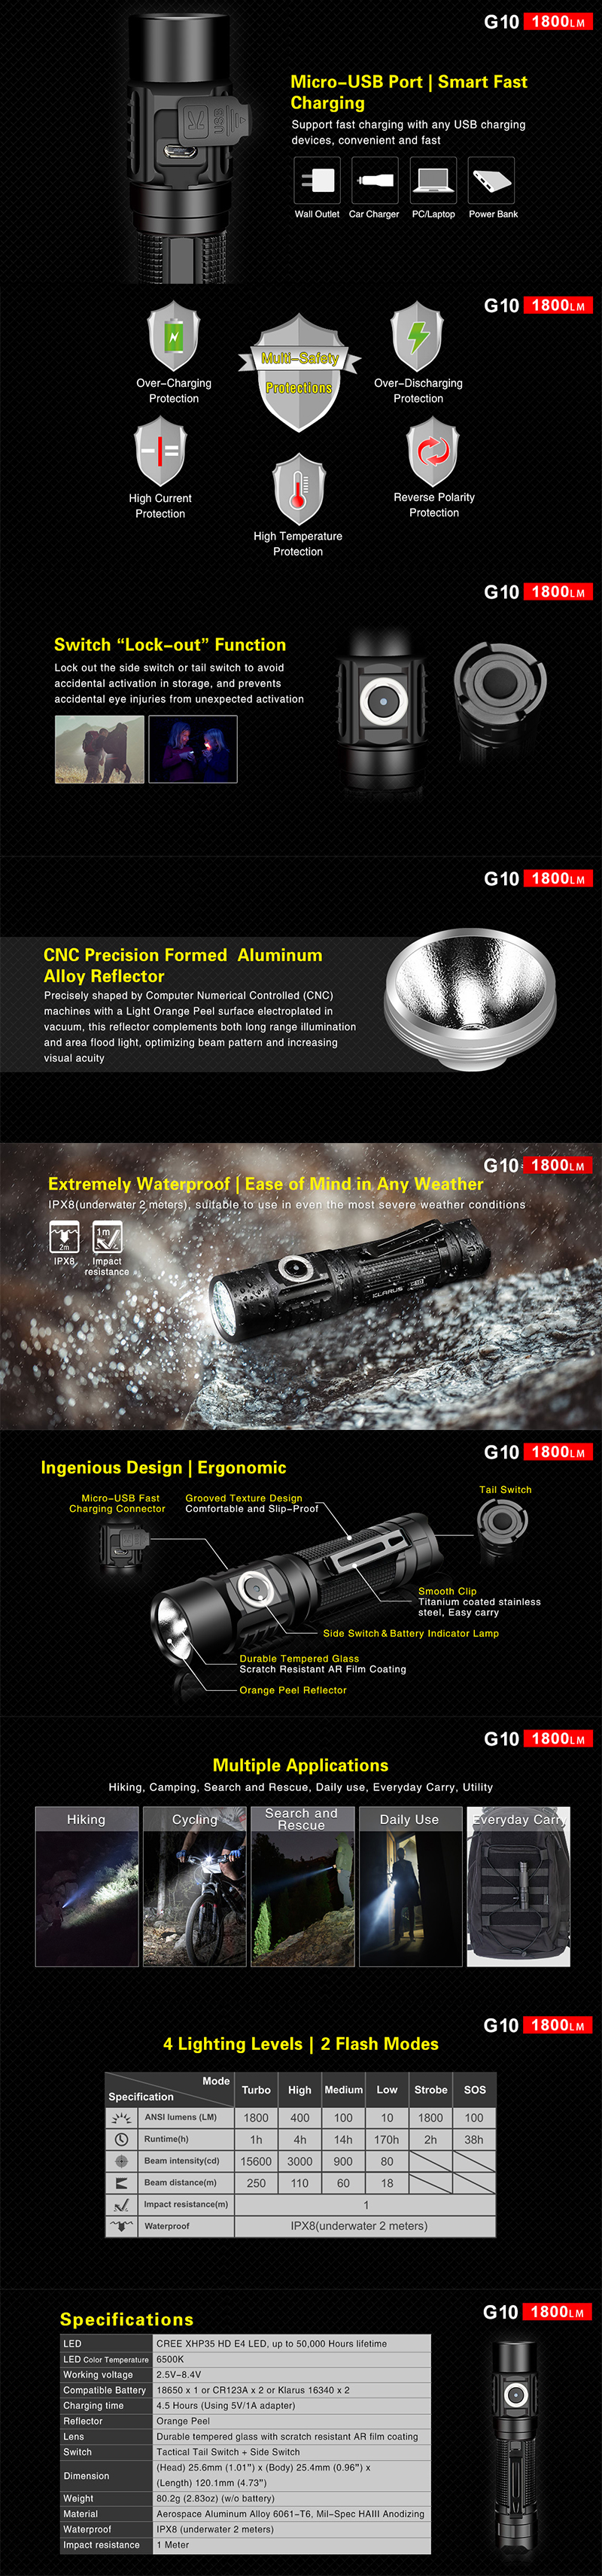 Klarus G10 XHP35 HD 1800LM 6Modes Tactical LED Flashlight Dual Switch USB Rechargeable Charging & Power Indicator